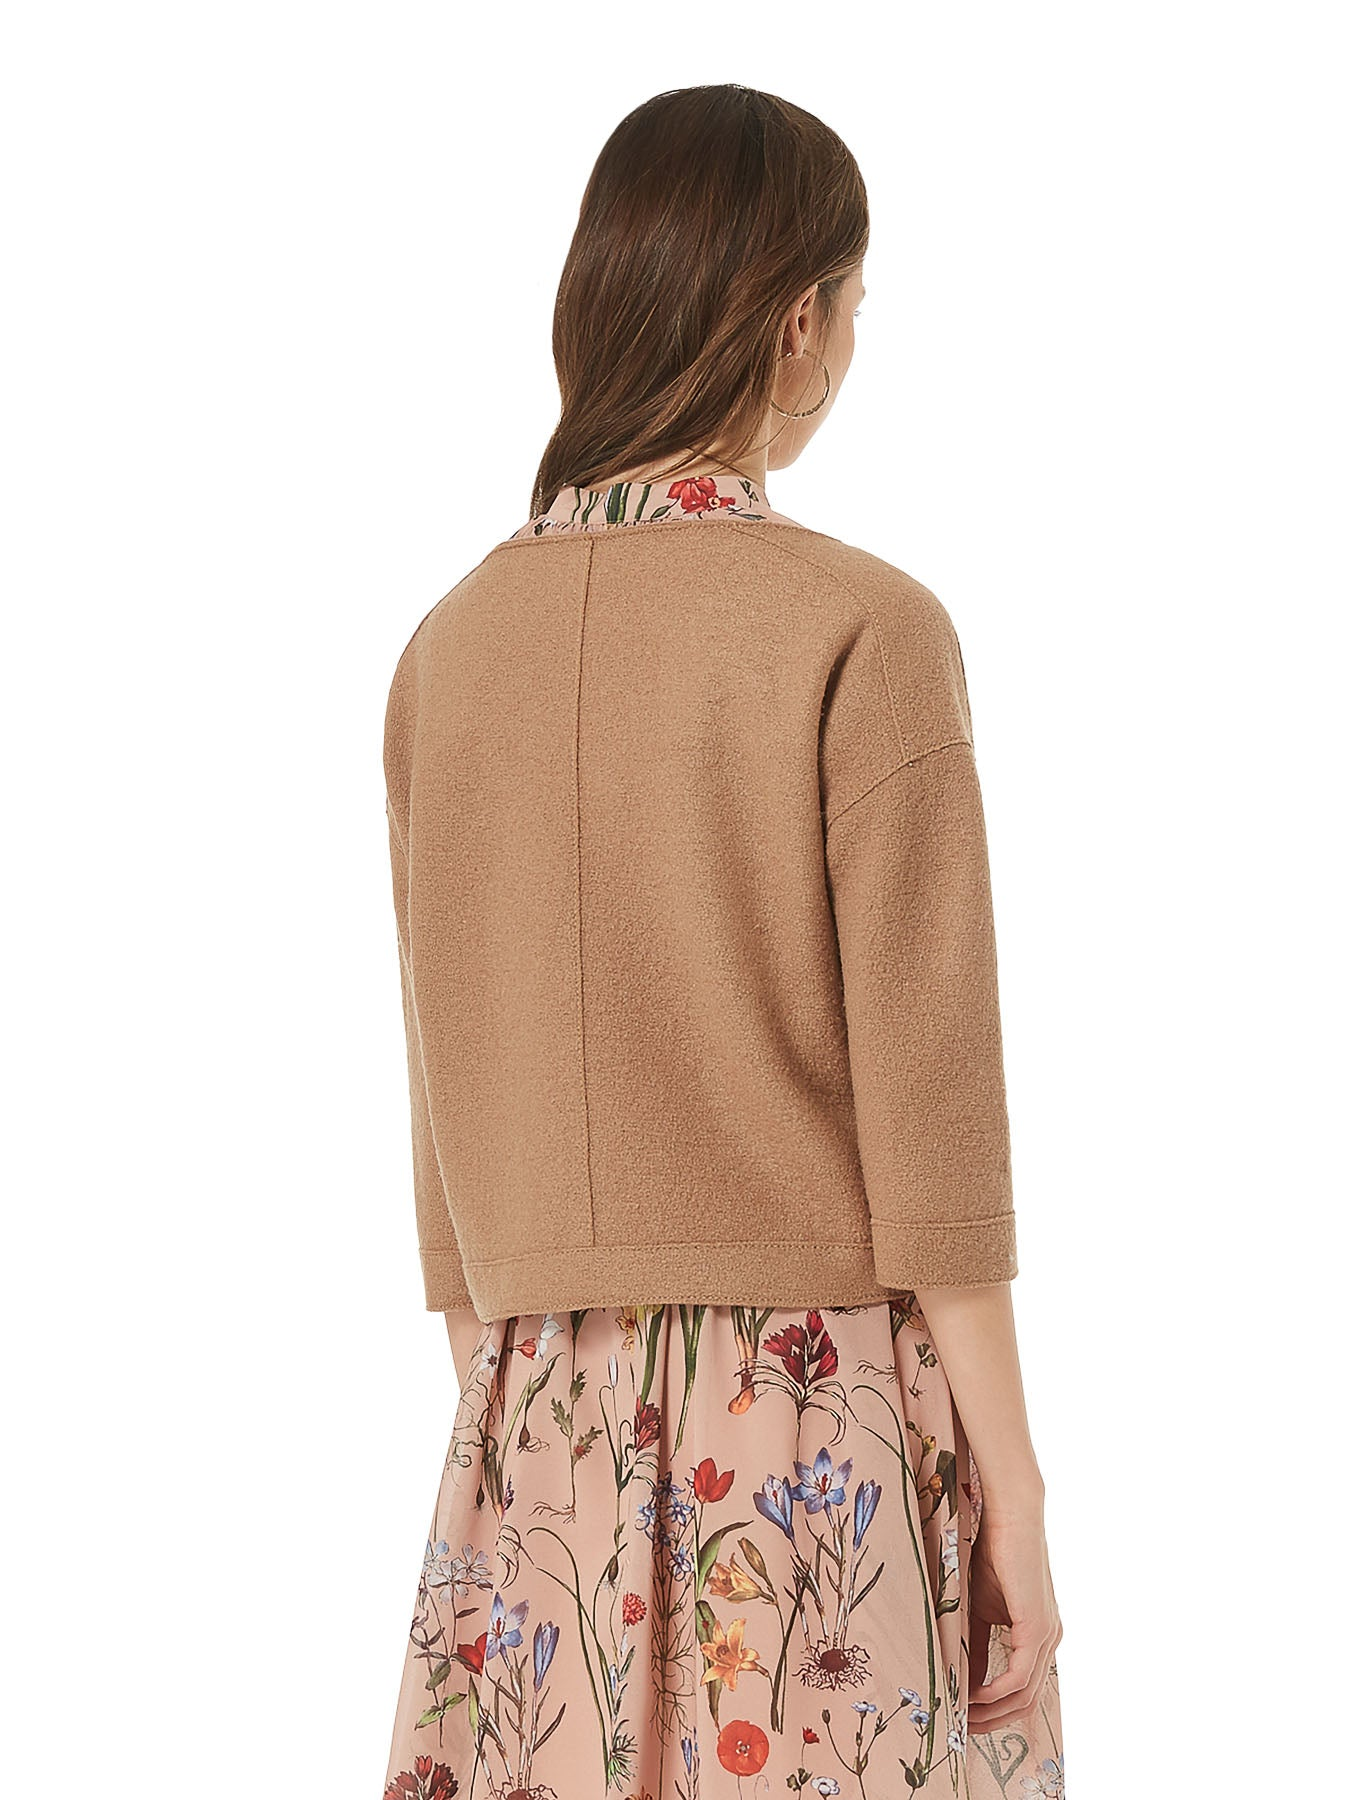 Unita Top in Camel